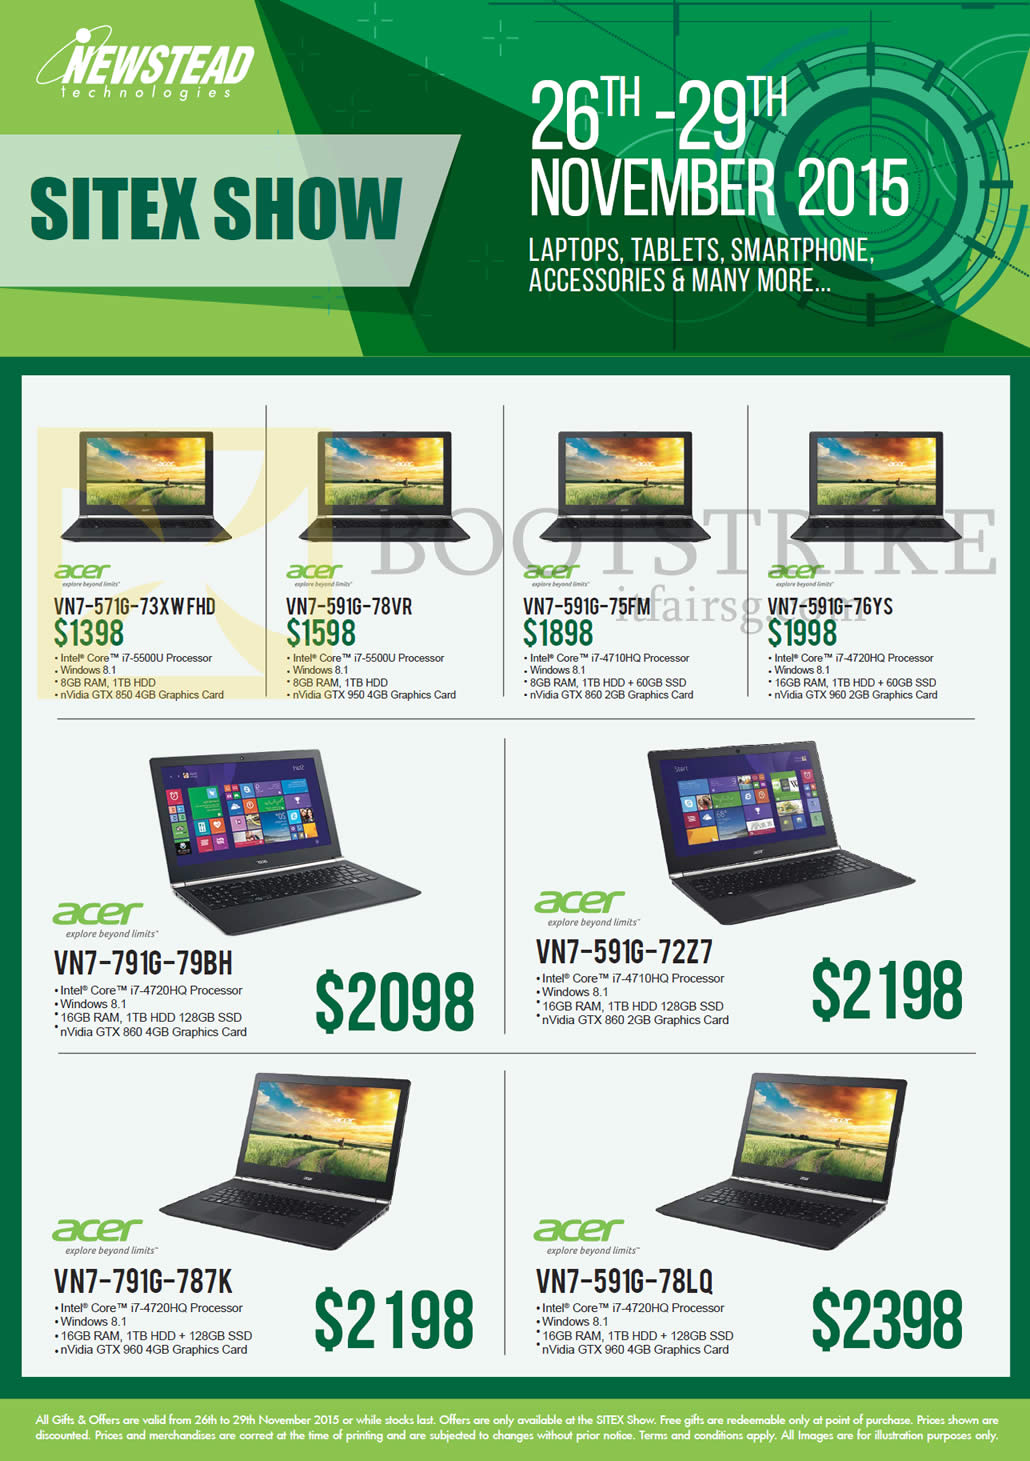 SITEX 2015 price list image brochure of Acer Newstead Notebooks VN7-571G